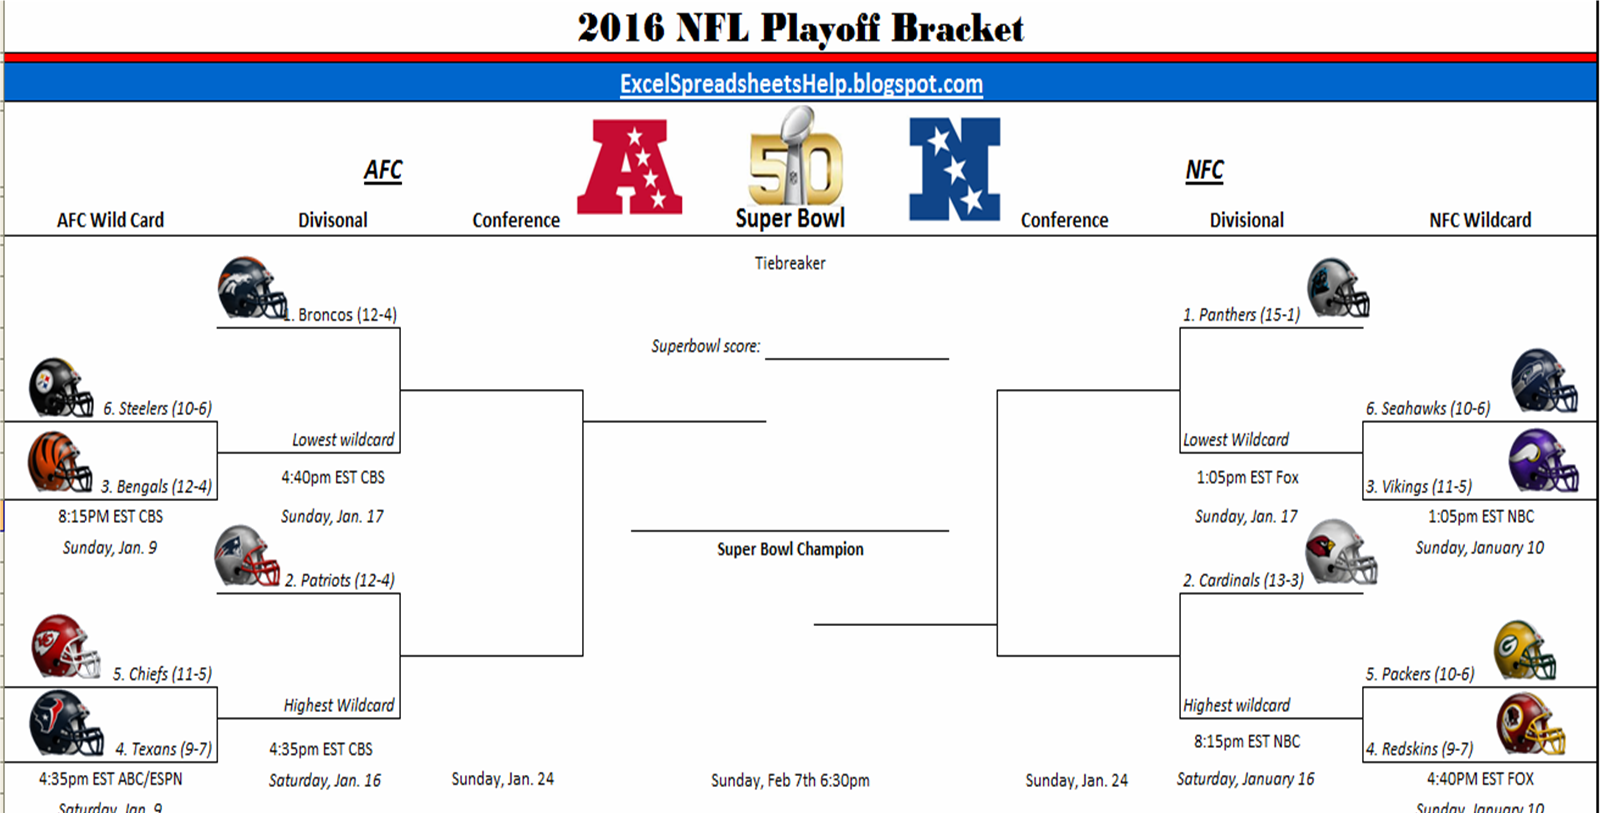 Playful image with printable nfl playoff bracket